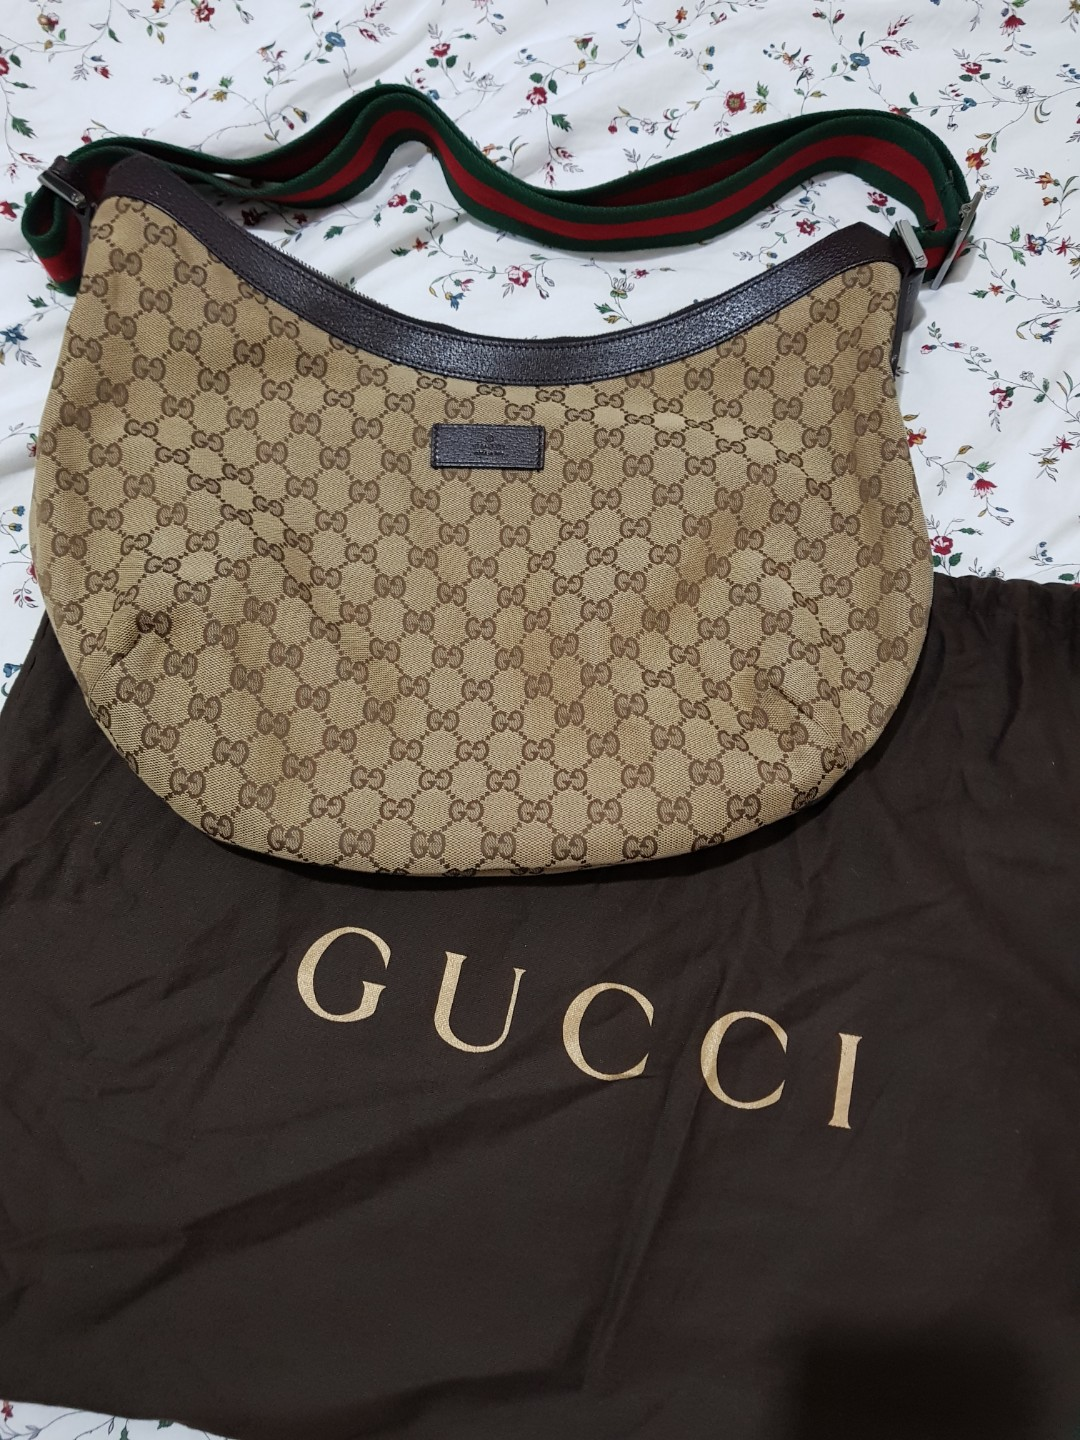 148bb9187c1a Gucci half moon sling bag, Luxury, Bags & Wallets on Carousell